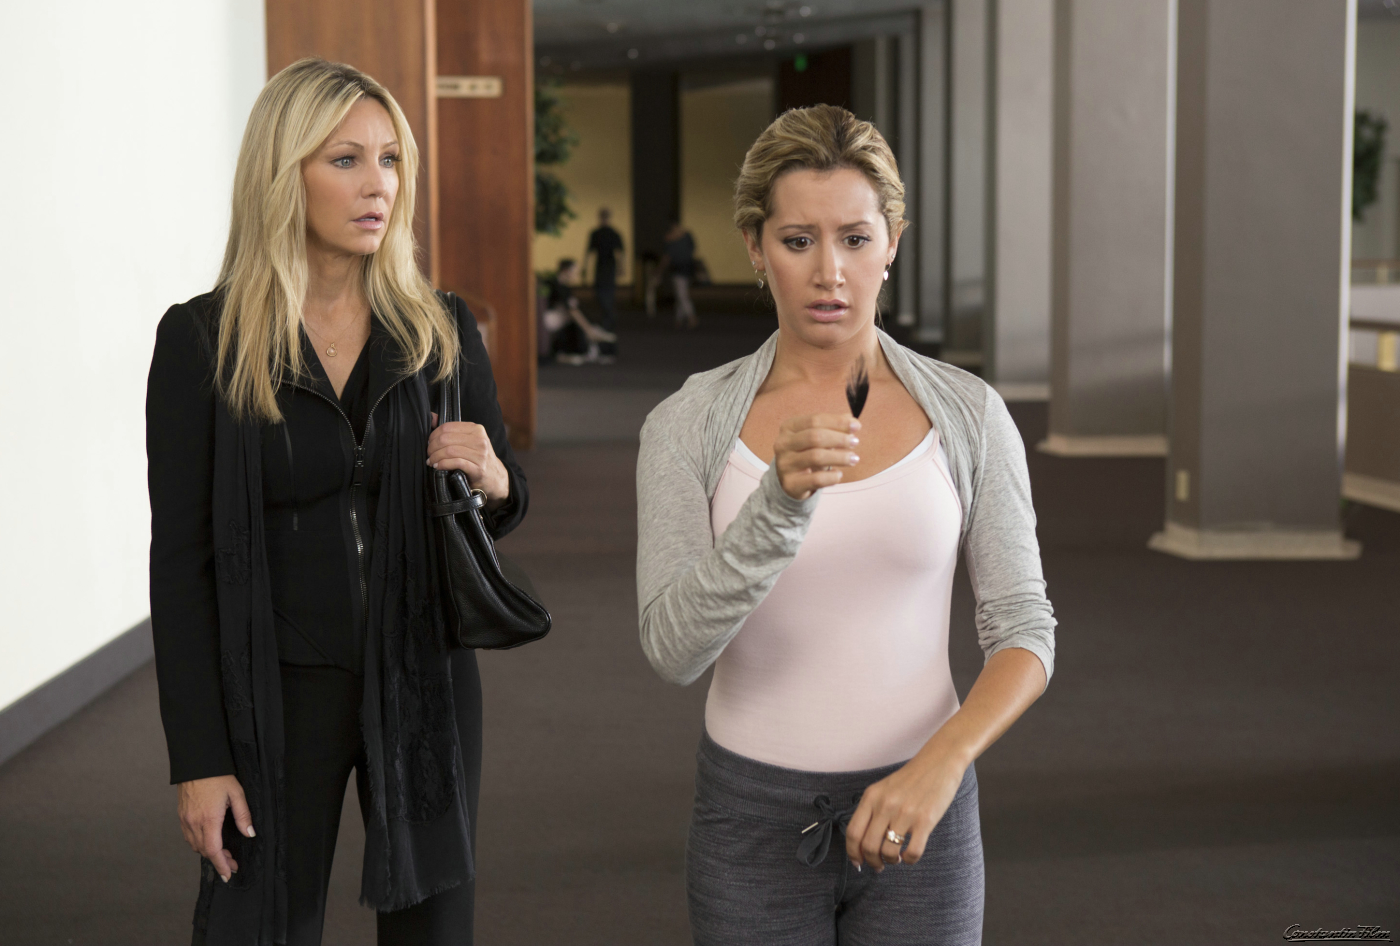 Was hat die Feder zu bedeuten? Jody (Ashley Tisdale) und ihre Mutter (Heather Locklear) rätseln noch…  SCARY MOVIE 5 - Ab 25. April im Kino.